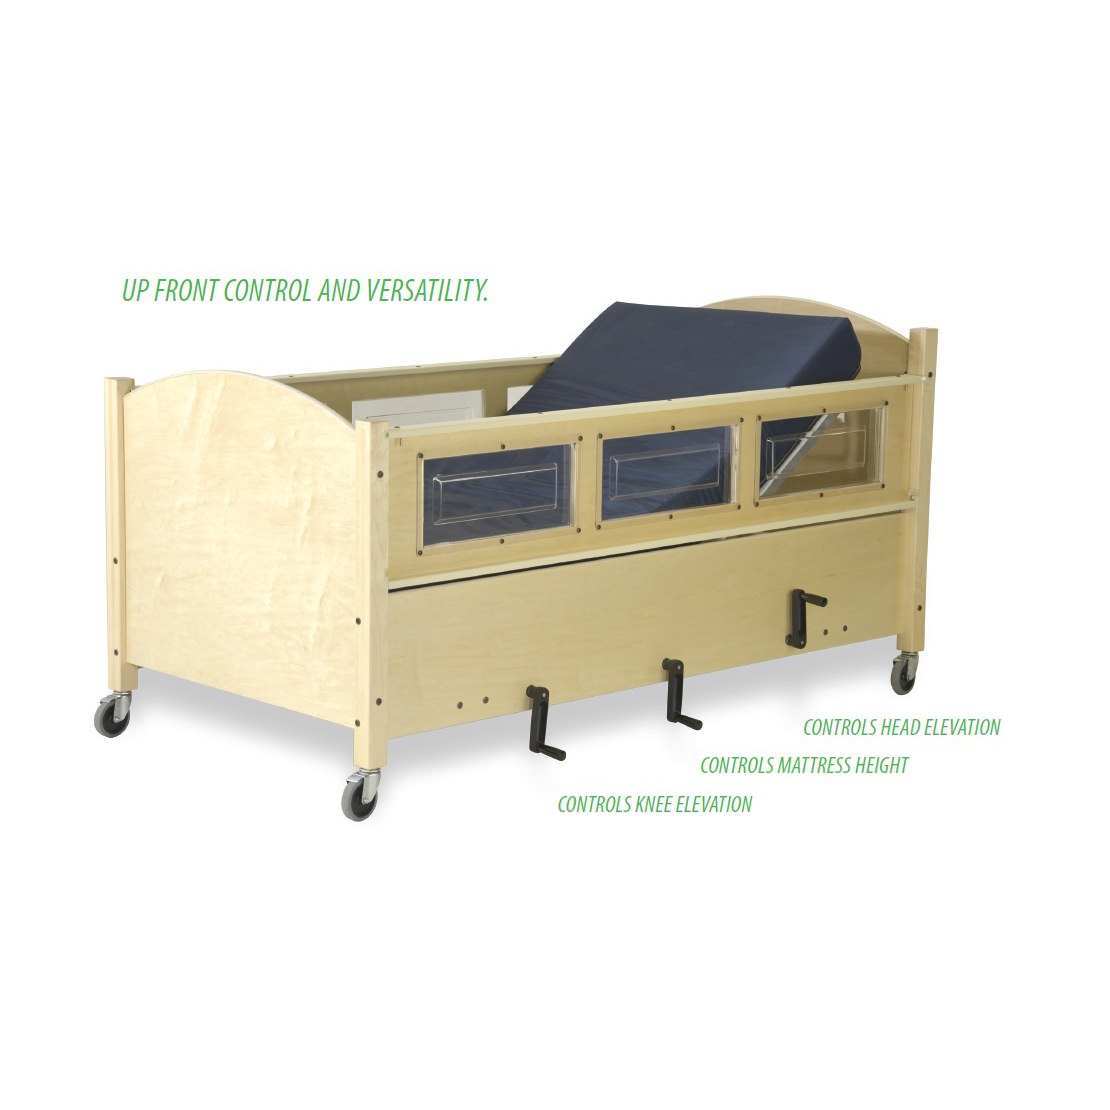 SleepSafe2 articulating medium bed